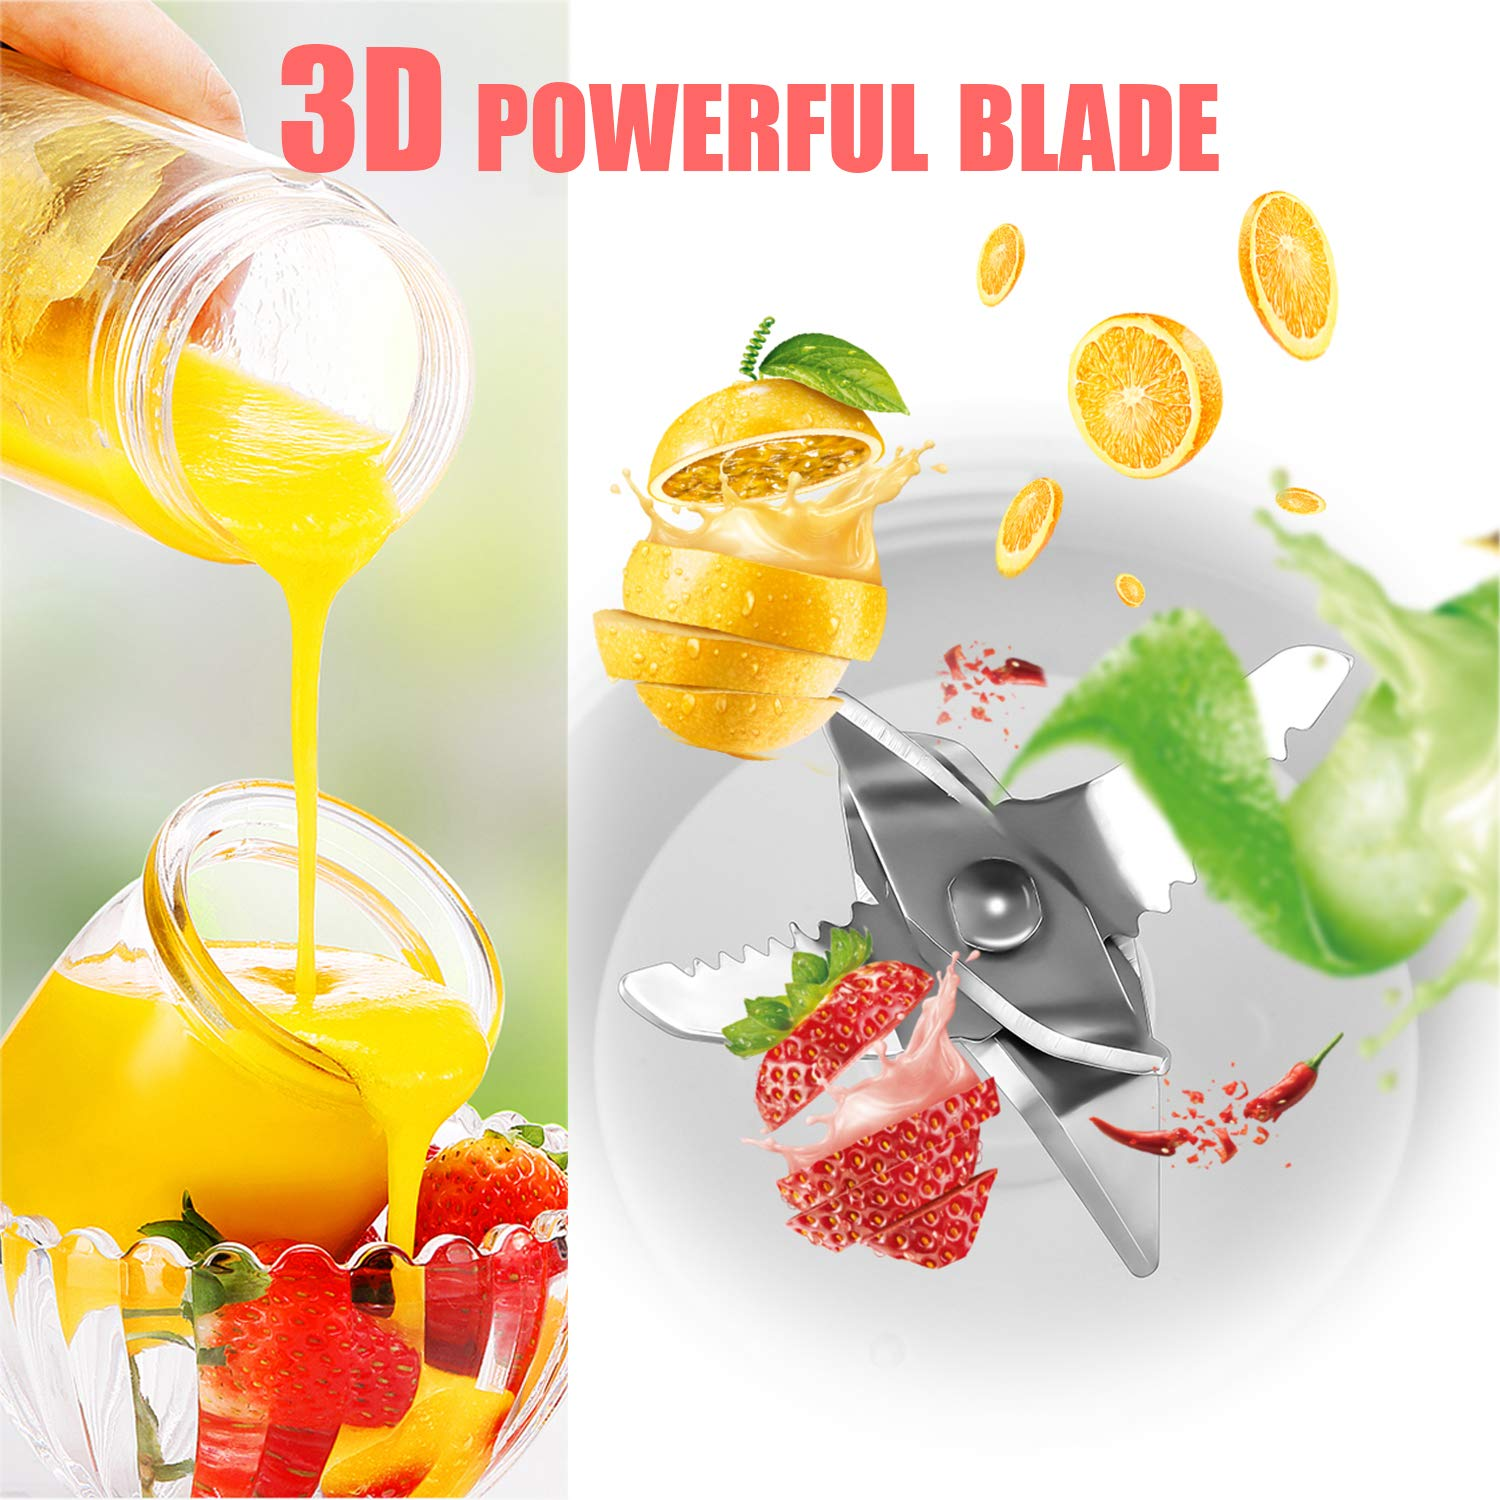 Rynal Portable Blender Cup 3D Blades Smoothie Juicer 13oz Personal Fruit Mixing Machine with 2000mAh USB Rechargeable Battery